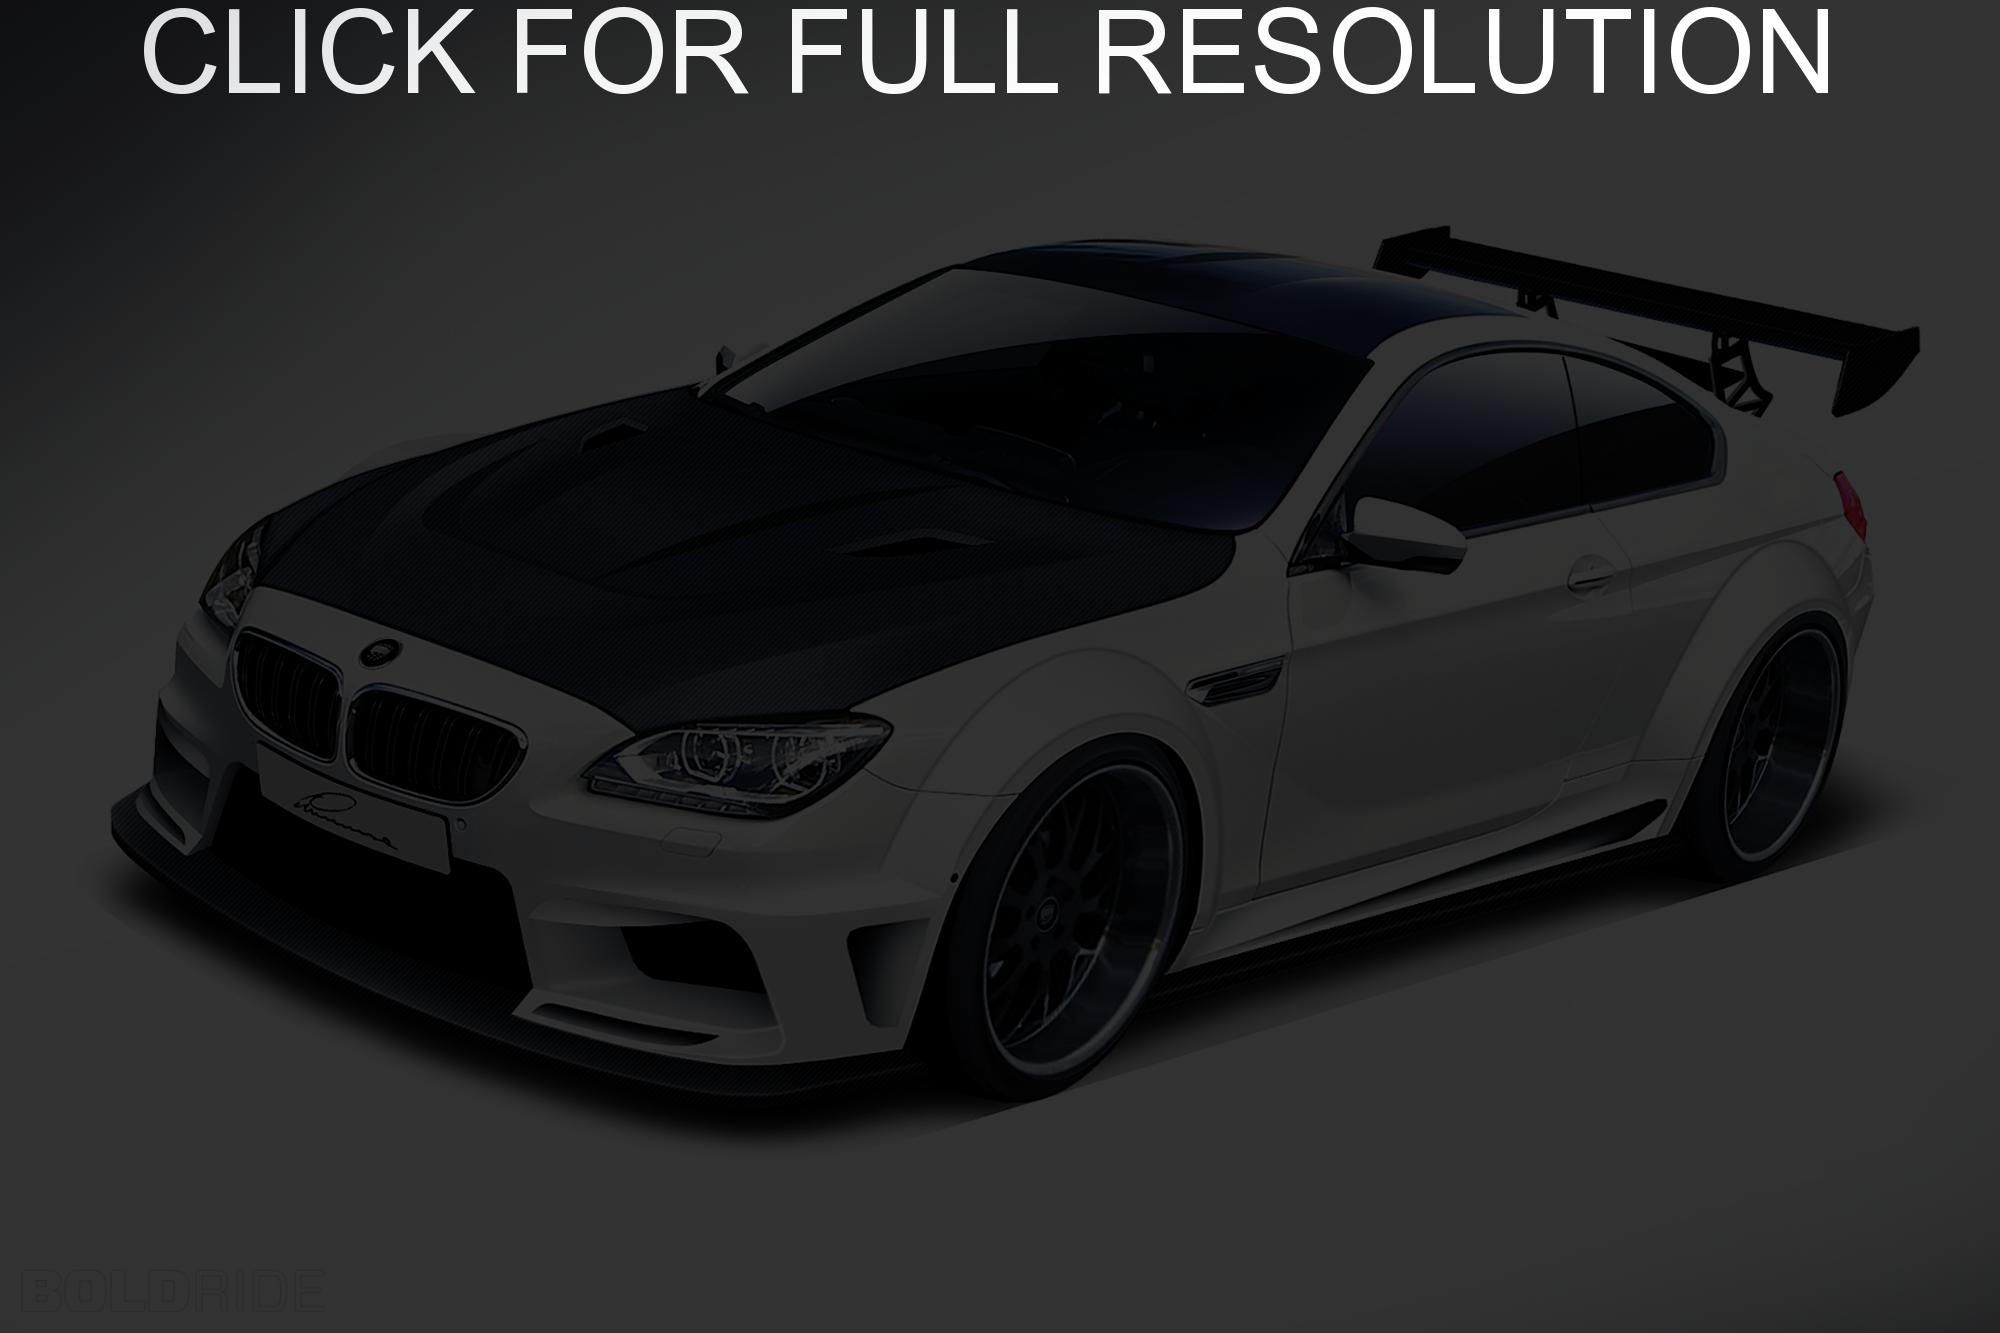 BMW M6 Auto & Car Wallpapers HD | Iphone | Android| Desktop 5